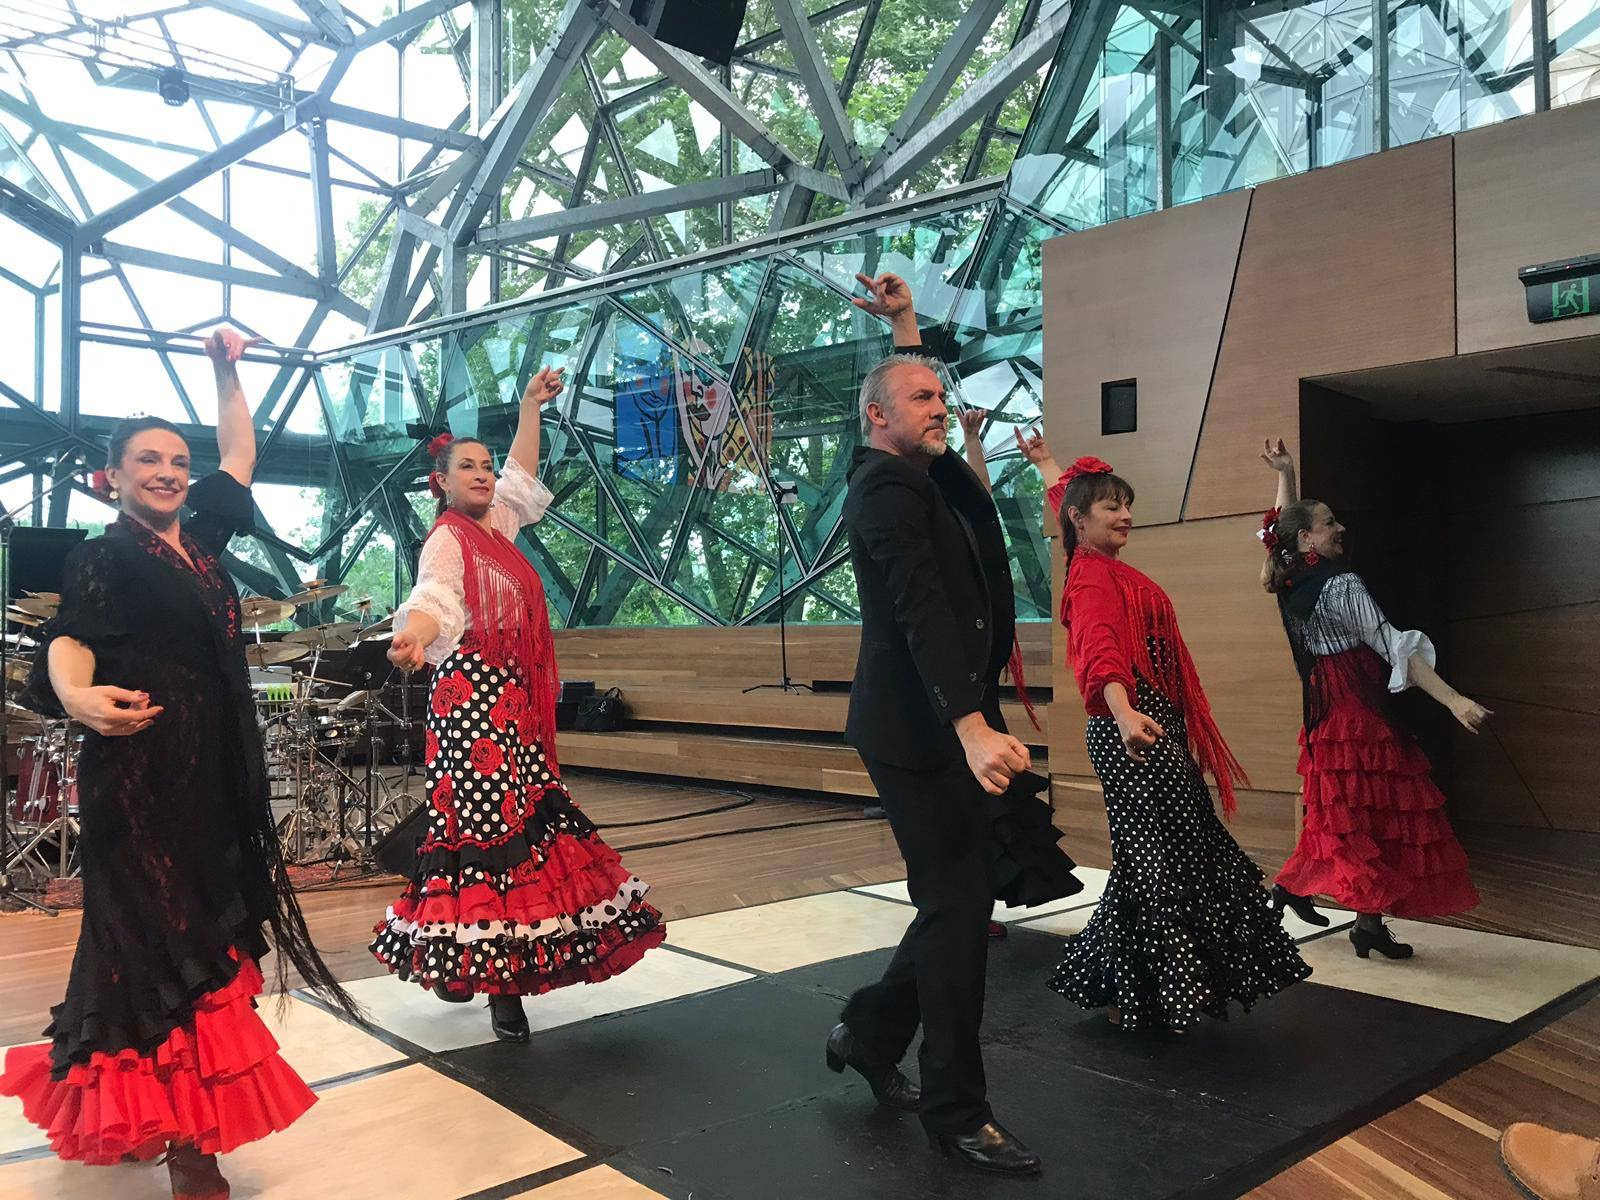 Show with Laura, Matt Fagan and group at Deakin Edge Melbourne 2019